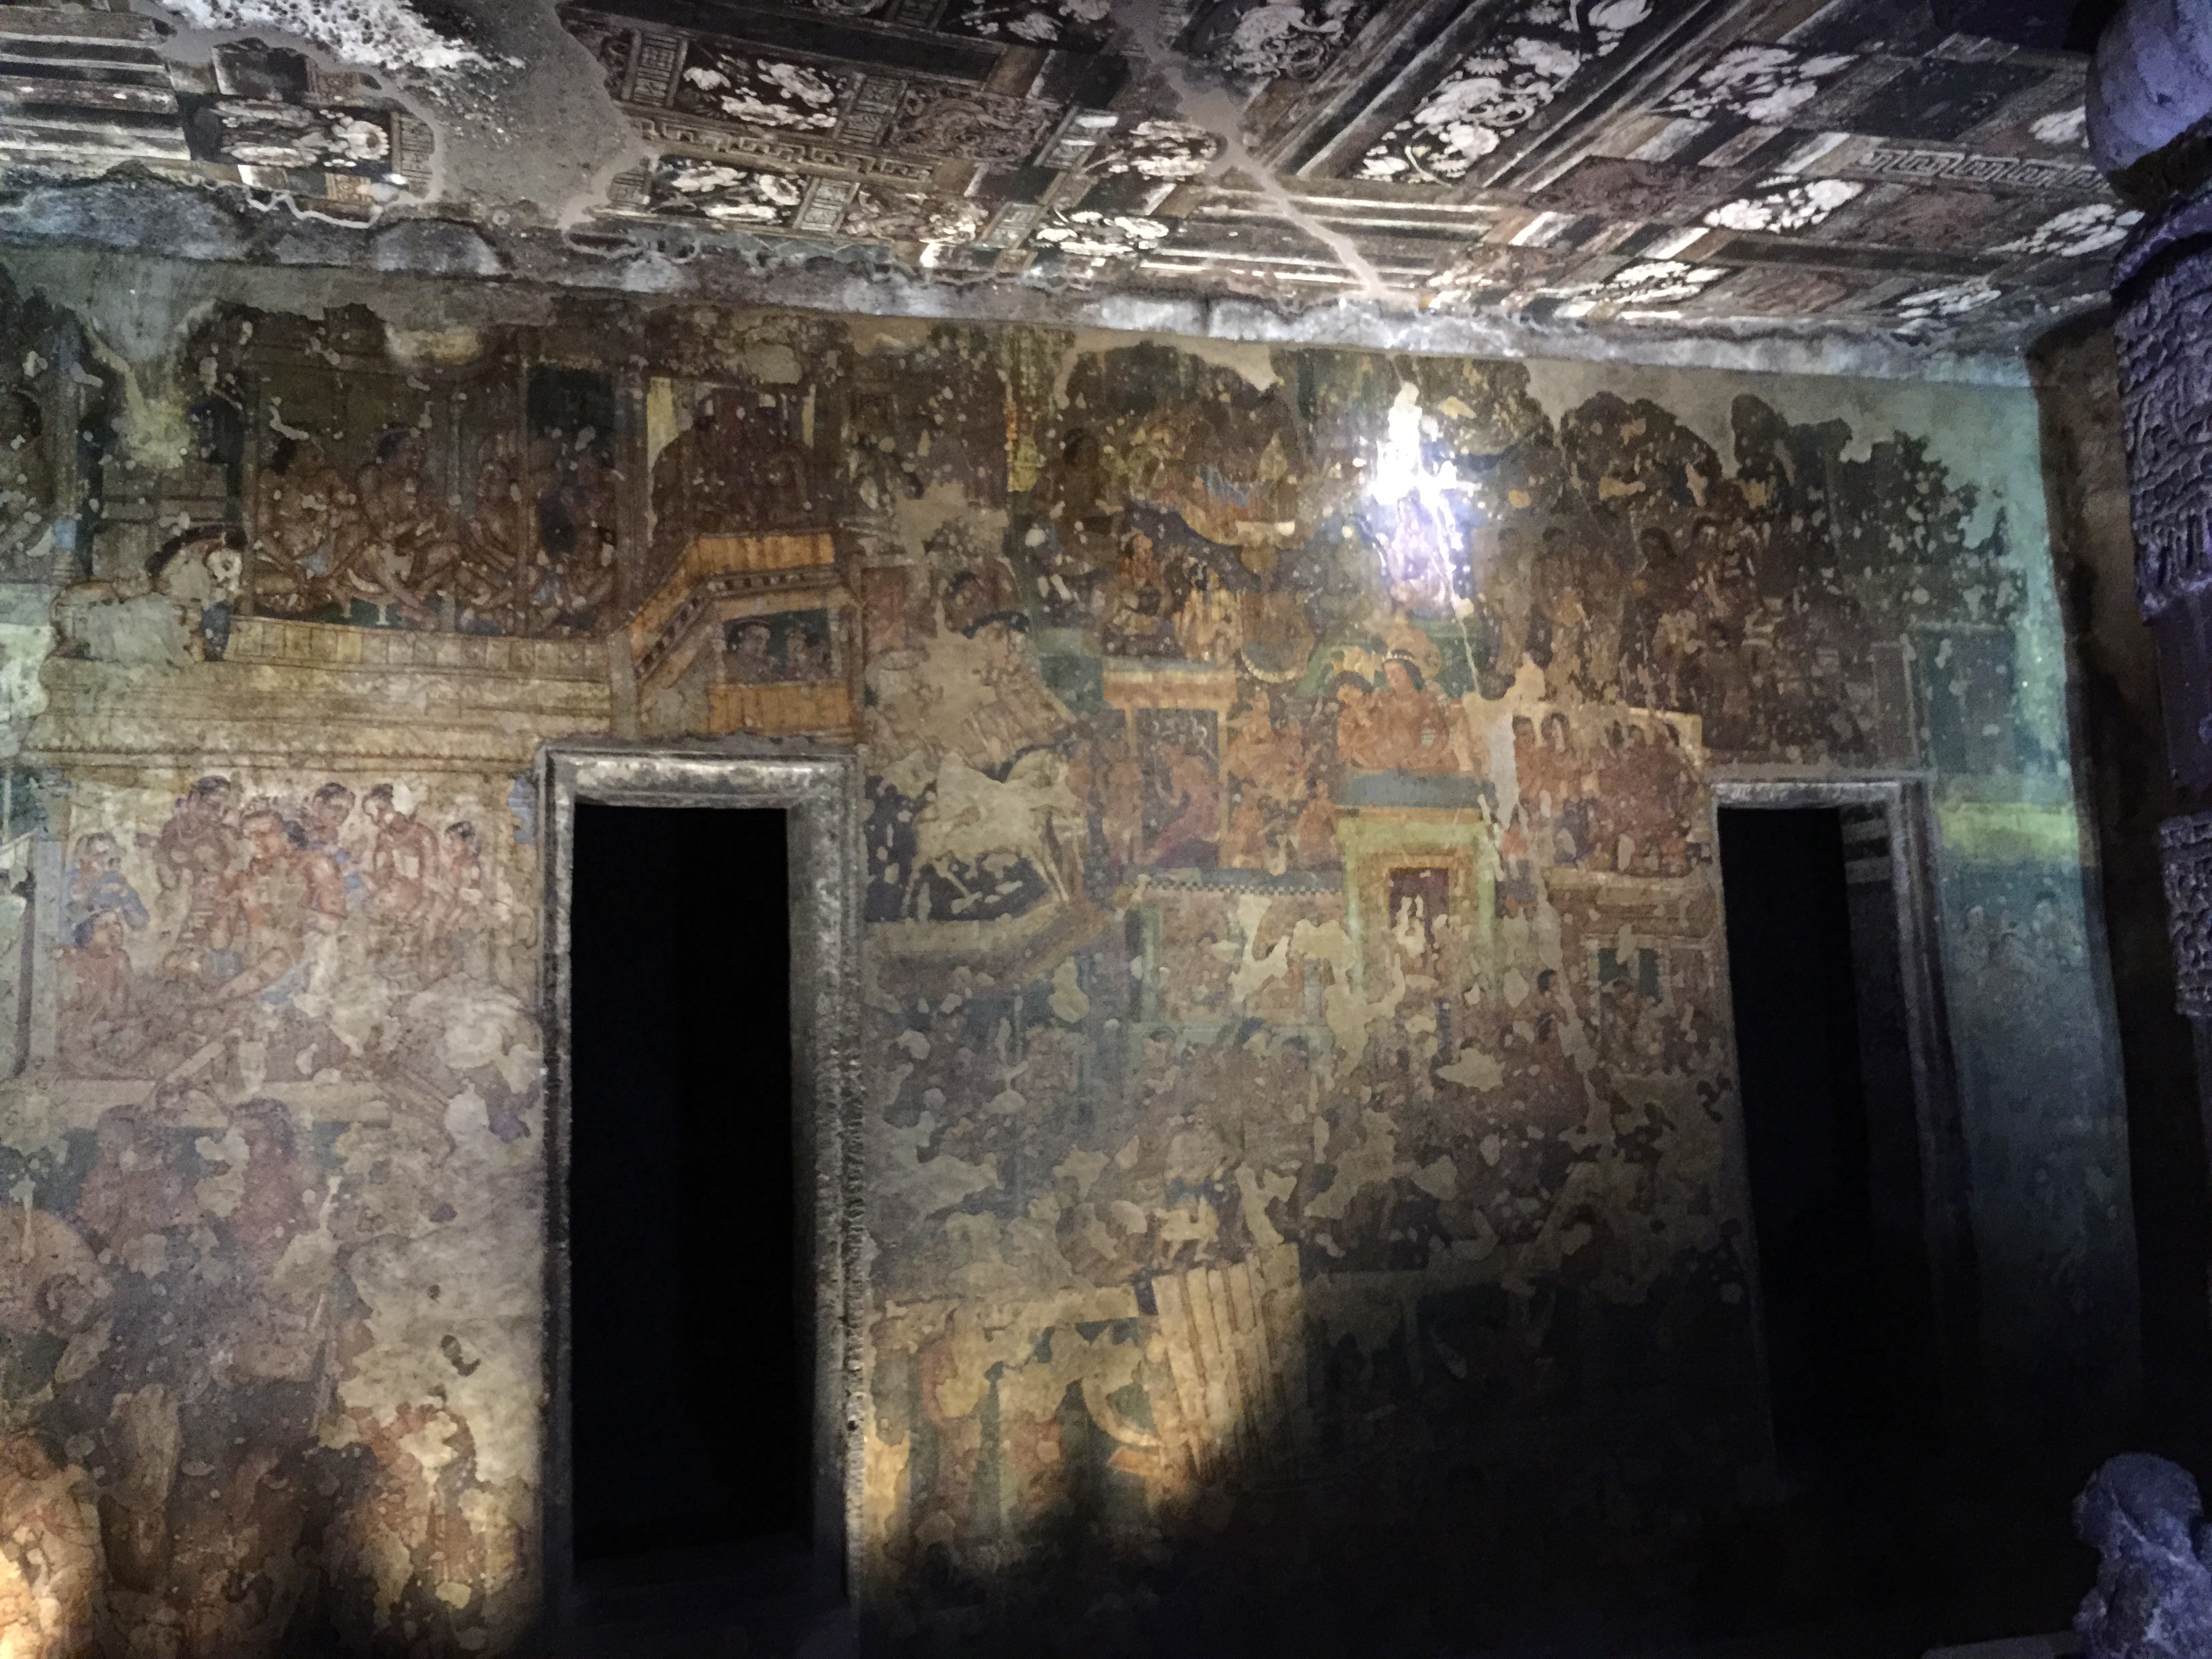 Paintings inside a cave